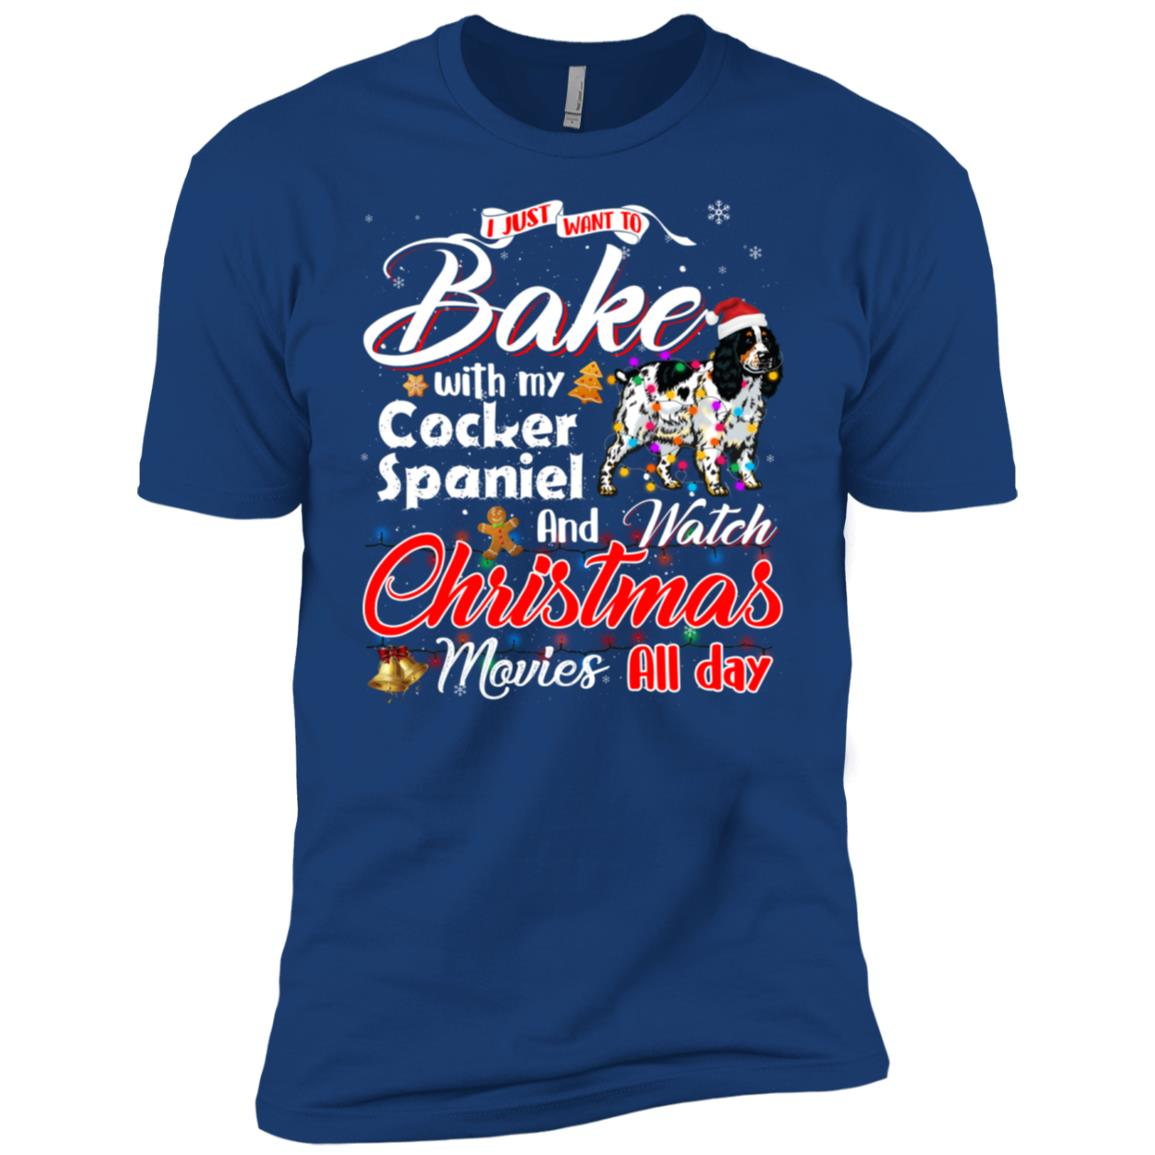 Bake Stuff with Cocker Spaniel Watch Xmas Movies Long Sleev Men Short Sleeve T-Shirt